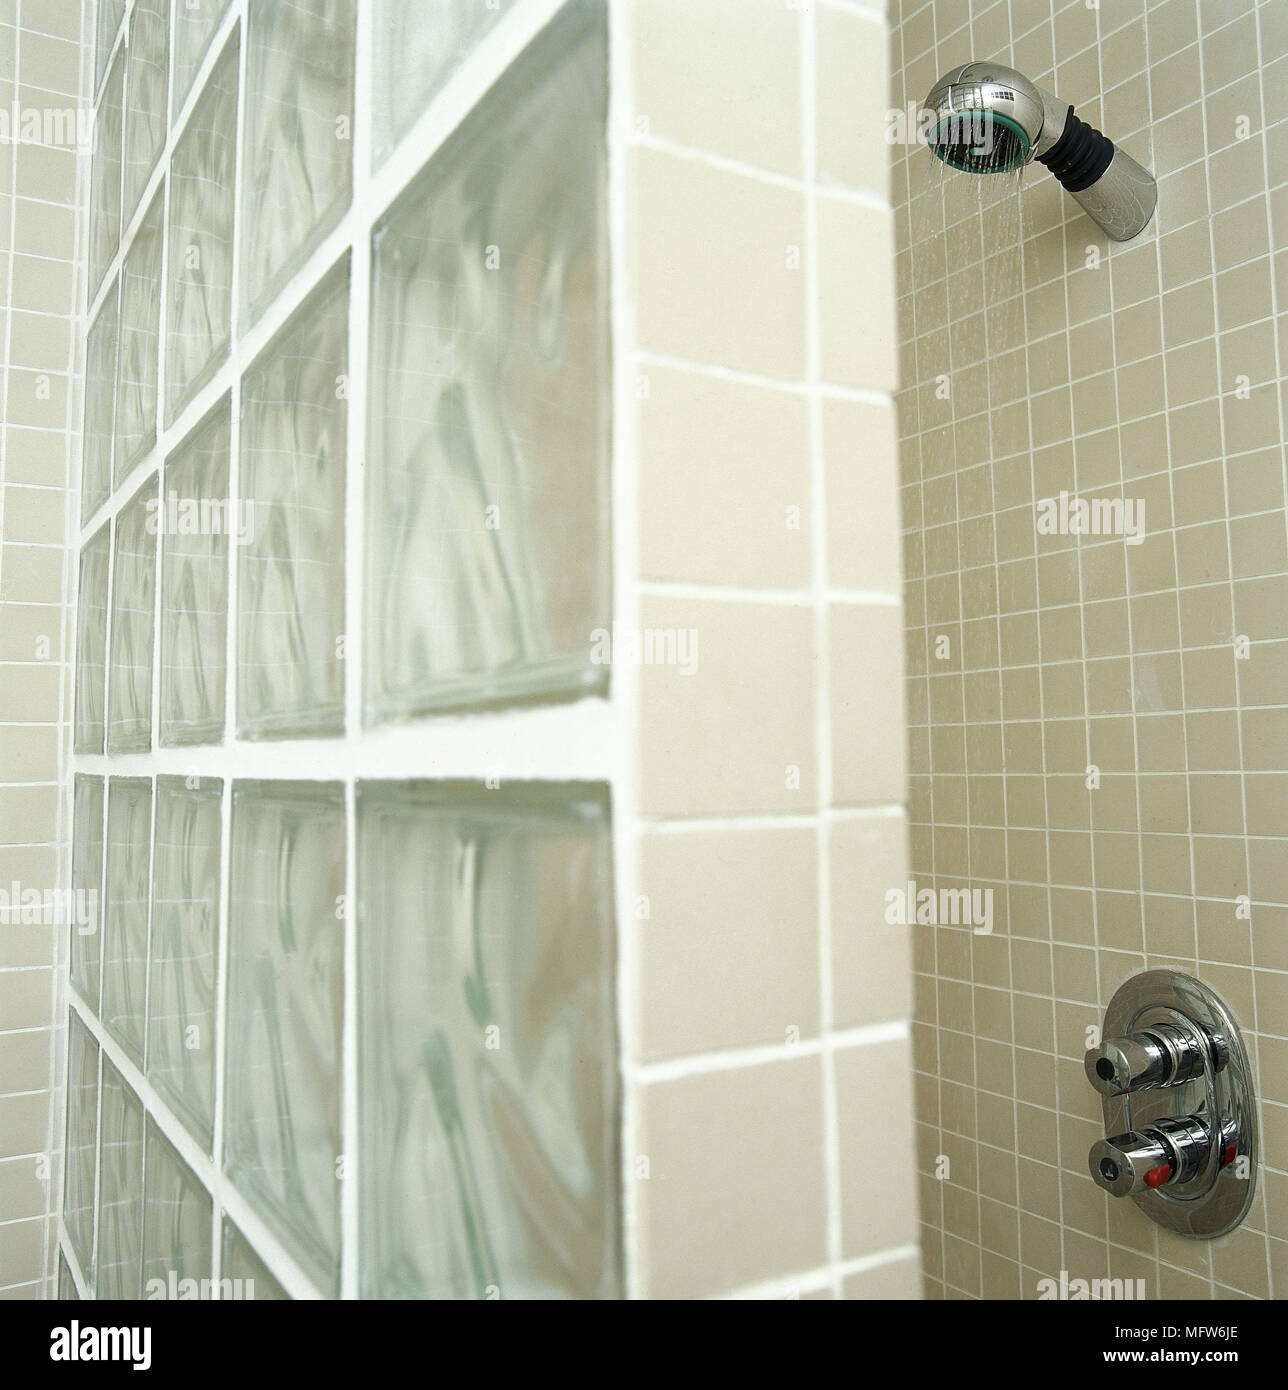 Modern bathroom detail mosaic tiles shower area glass block wall ...